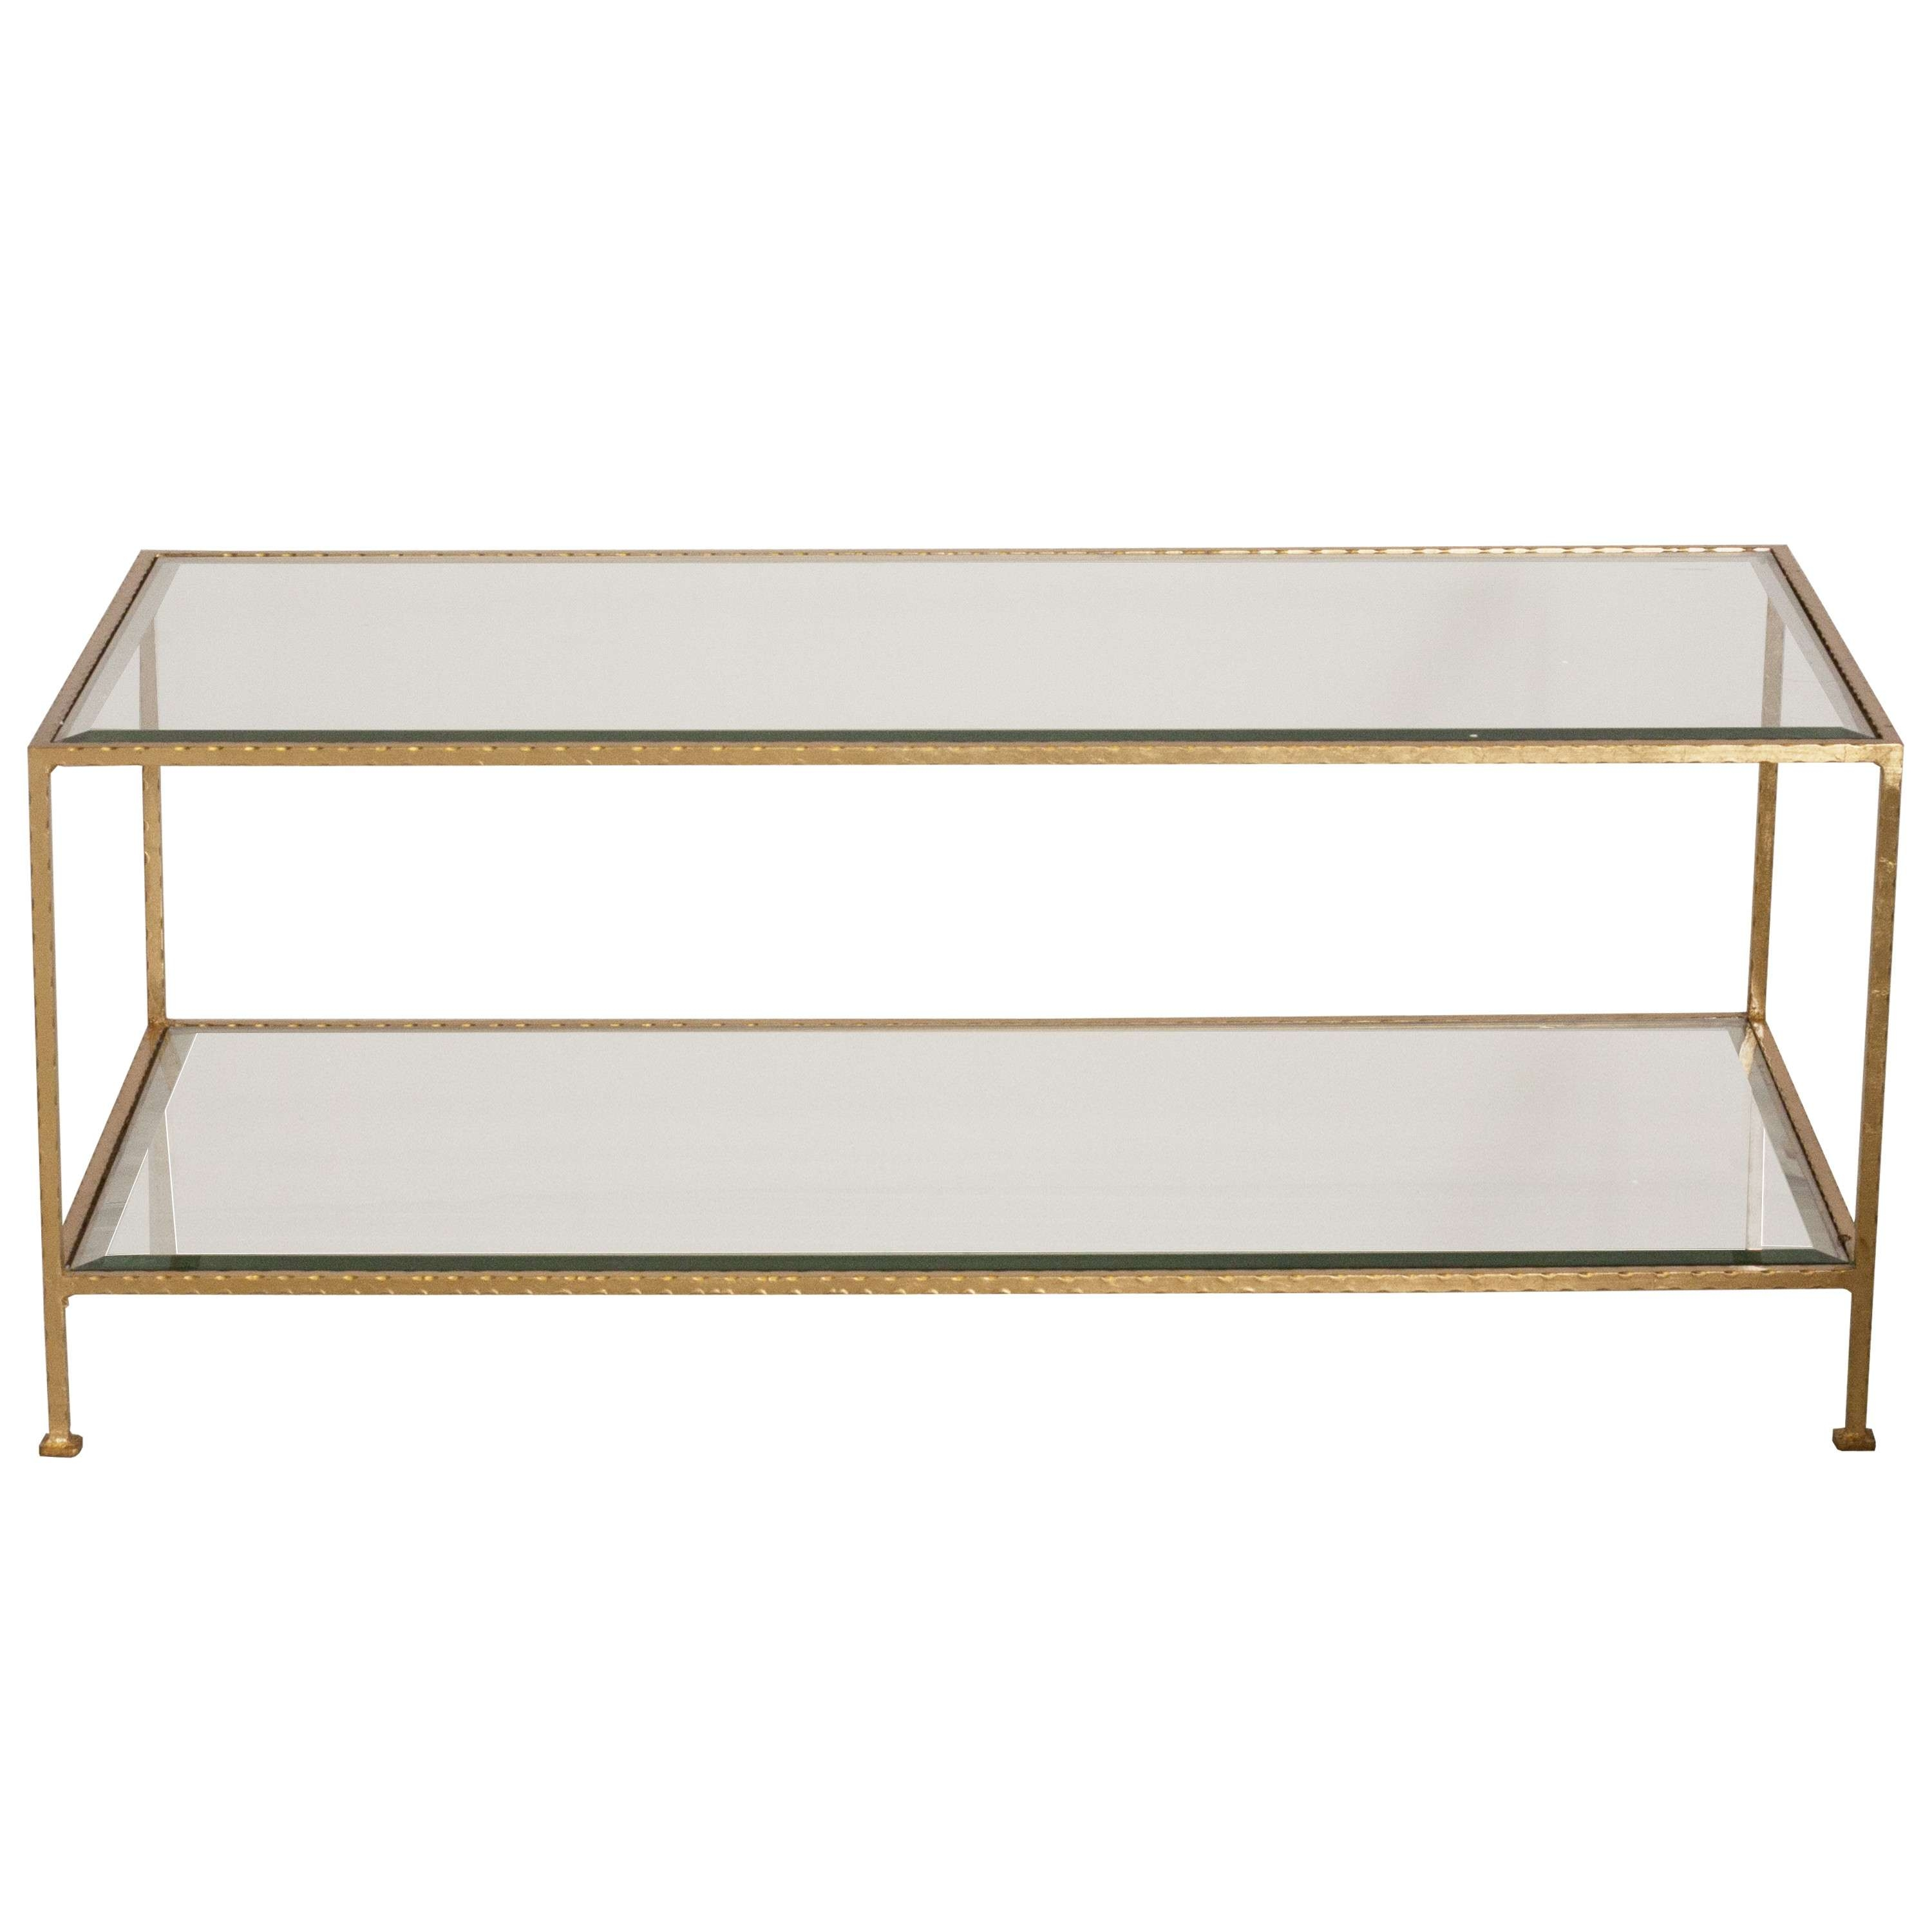 Decorations : Coffee Table Contemporary Stainless Steel Glass In Well Known Glass Steel Coffee Tables (View 4 of 20)